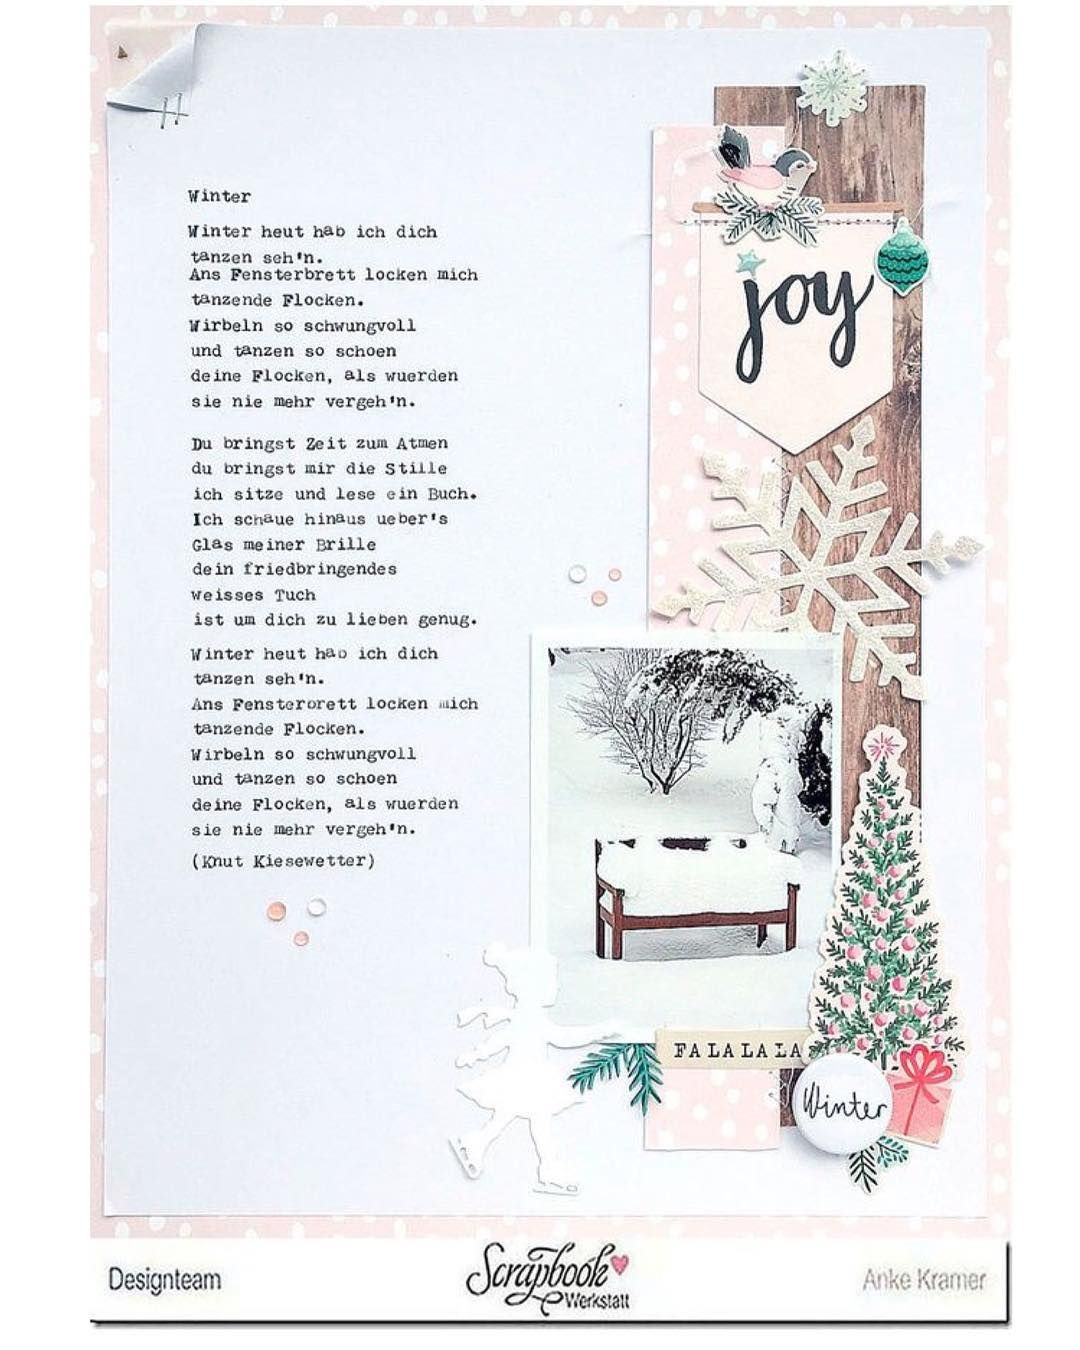 Time To Share Another Layout Made With The Scrapbookwerkstatt December Kit Pink For Winter Layouts Yes Zeit Fur Ein Weiteres L Scrapbook Layout Instagram